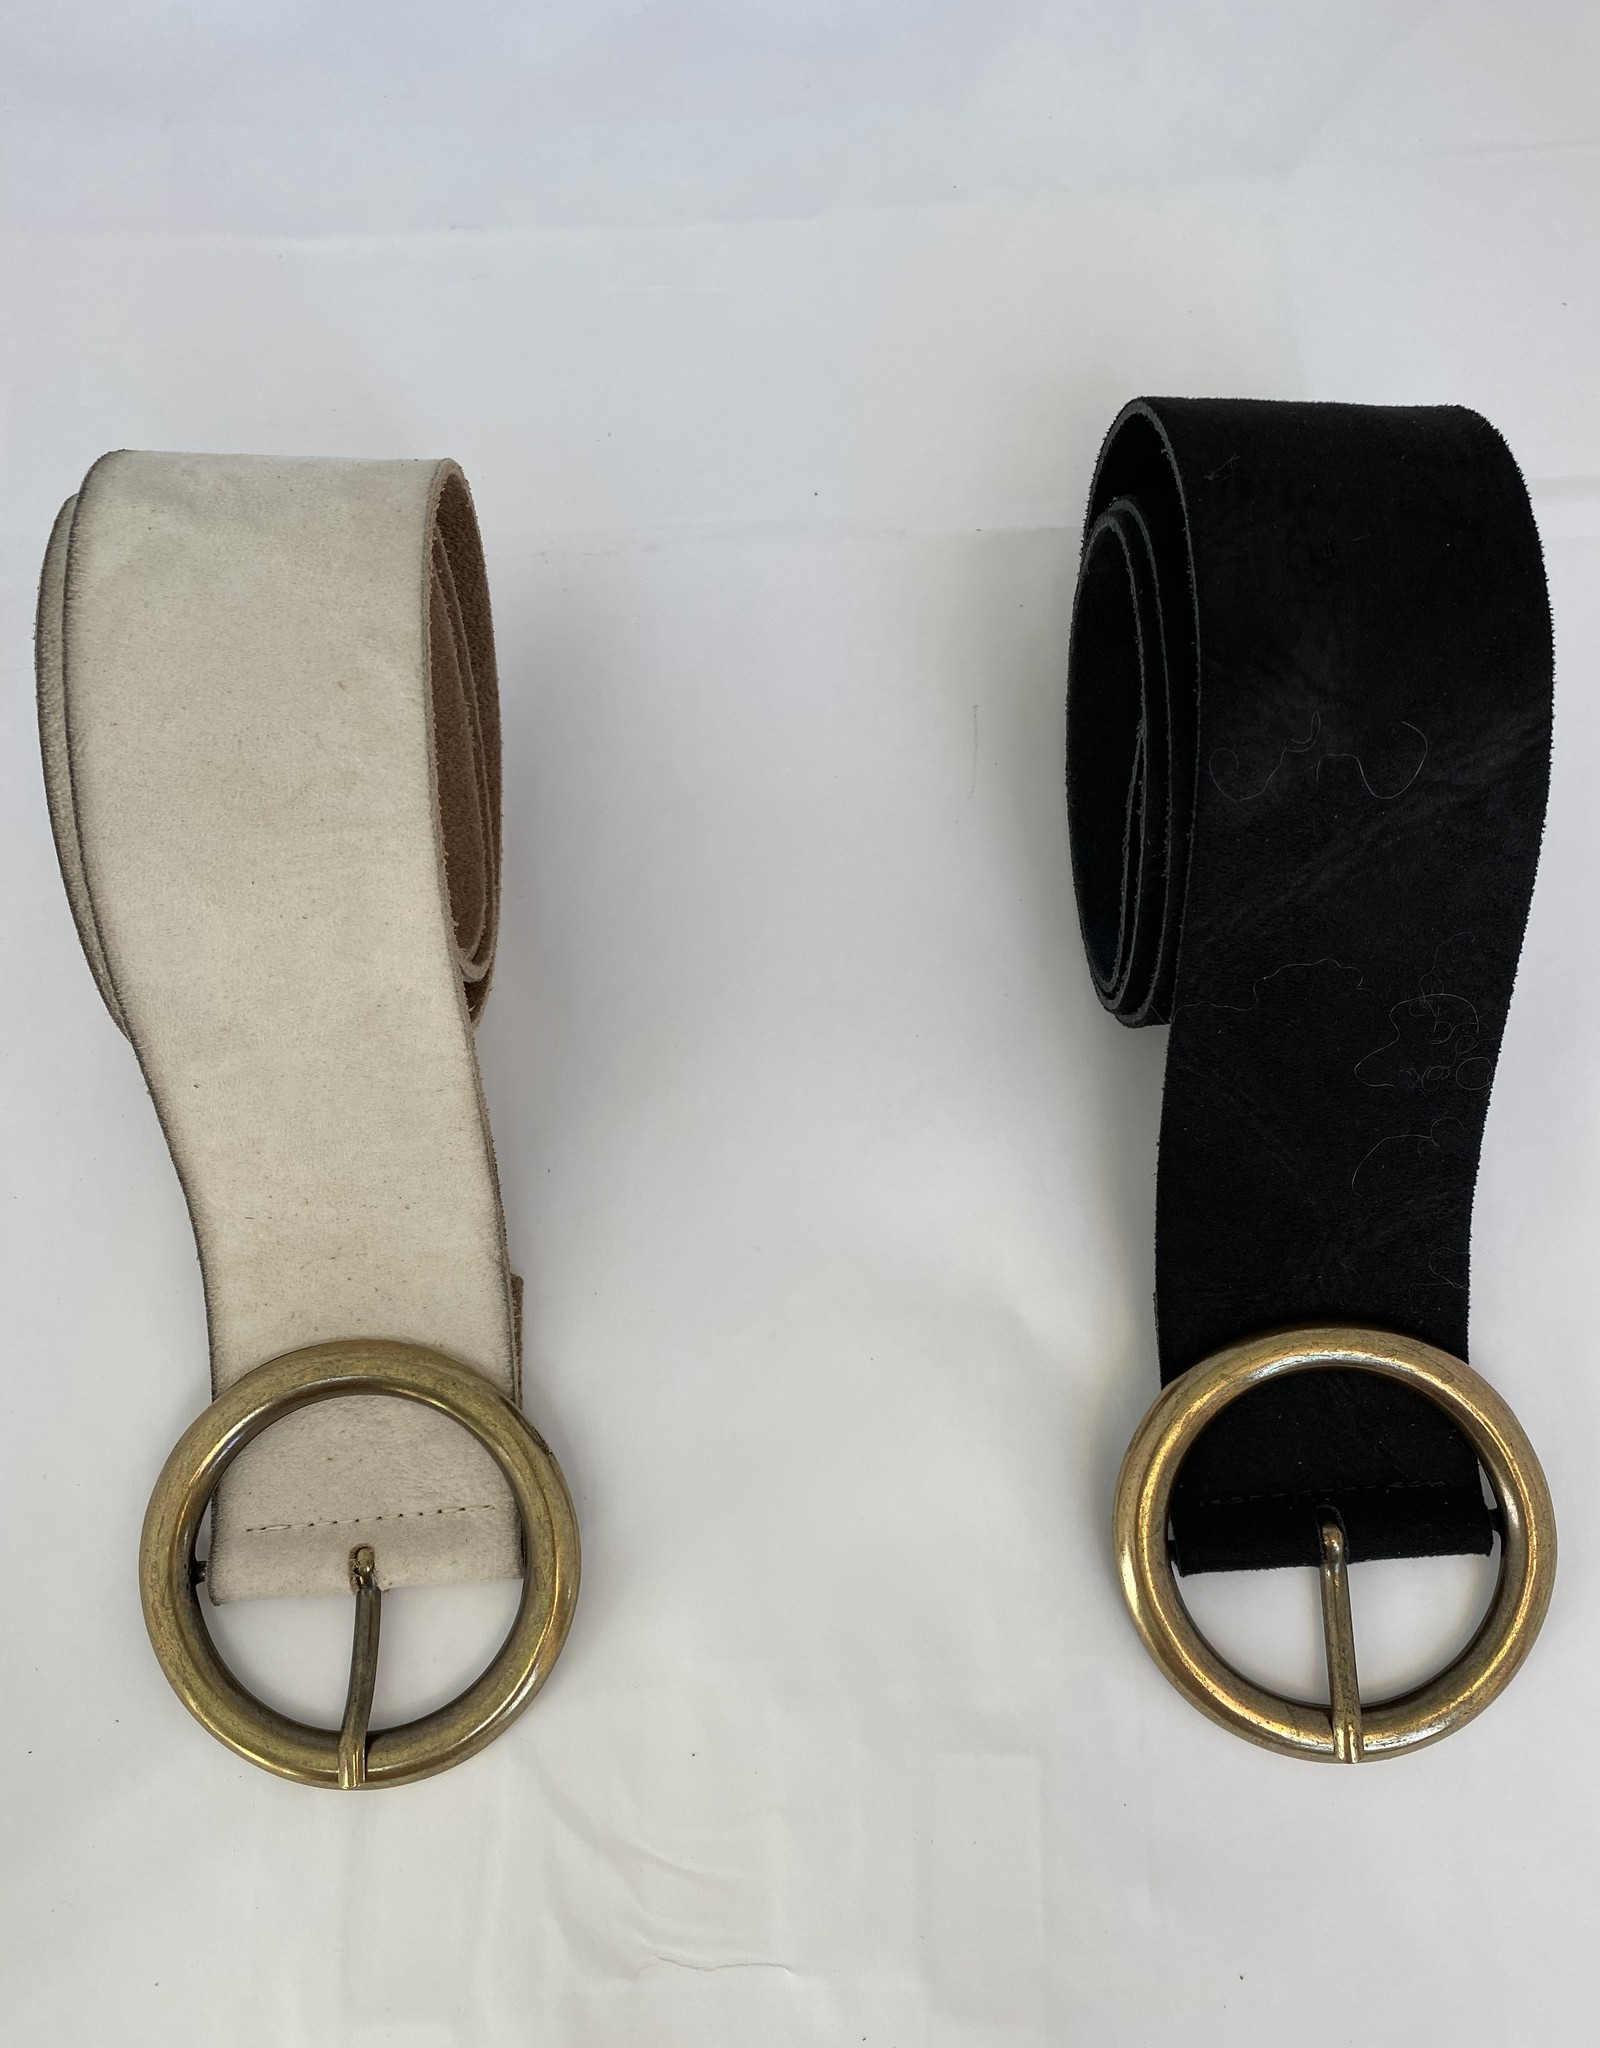 Wide leather belt in used leather with oldfashioned buckle